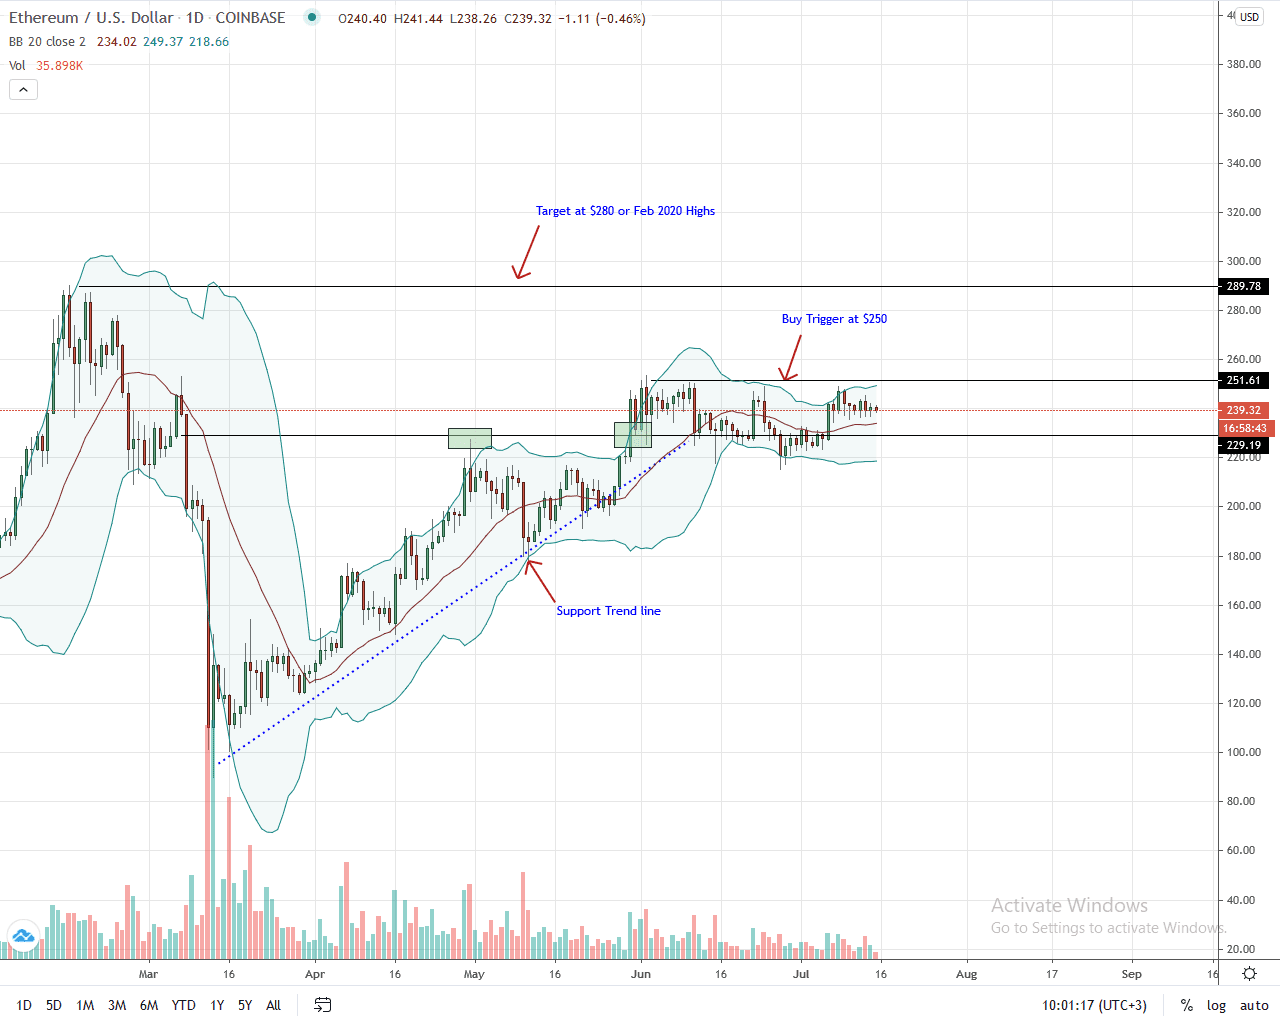 Ethereum Daily Chart for July 15, 2020